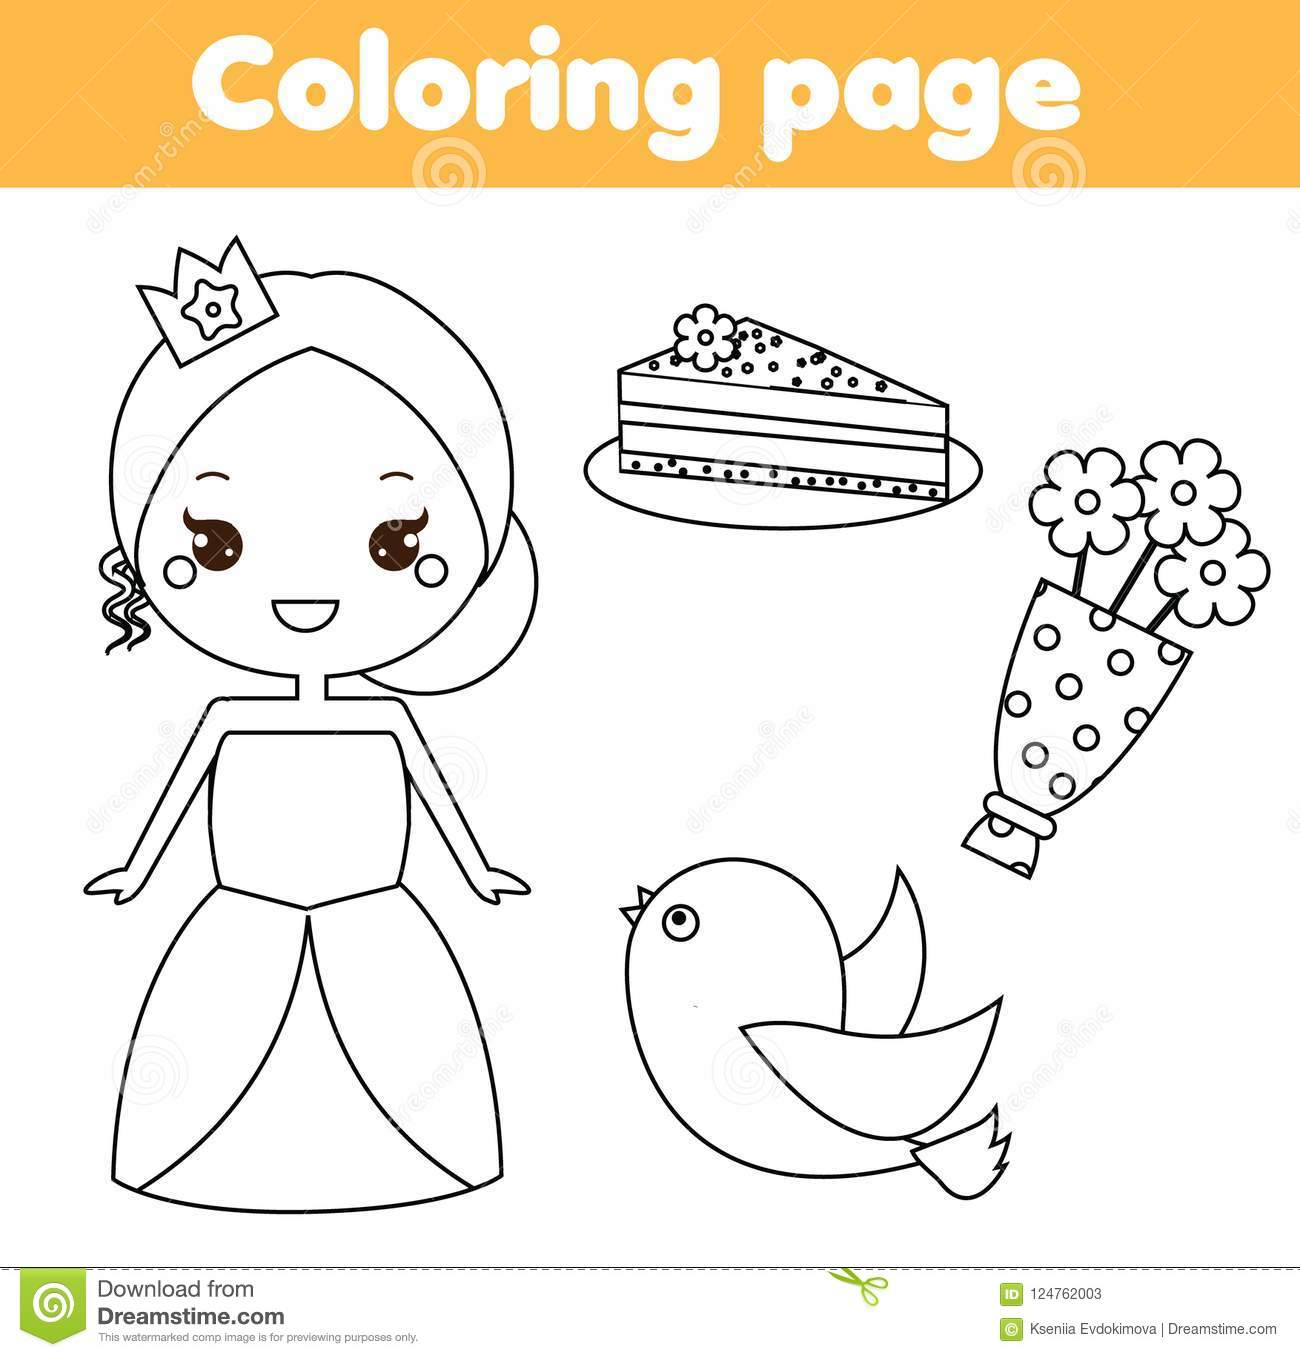 Educational children game princess theme drawing kids printable activity